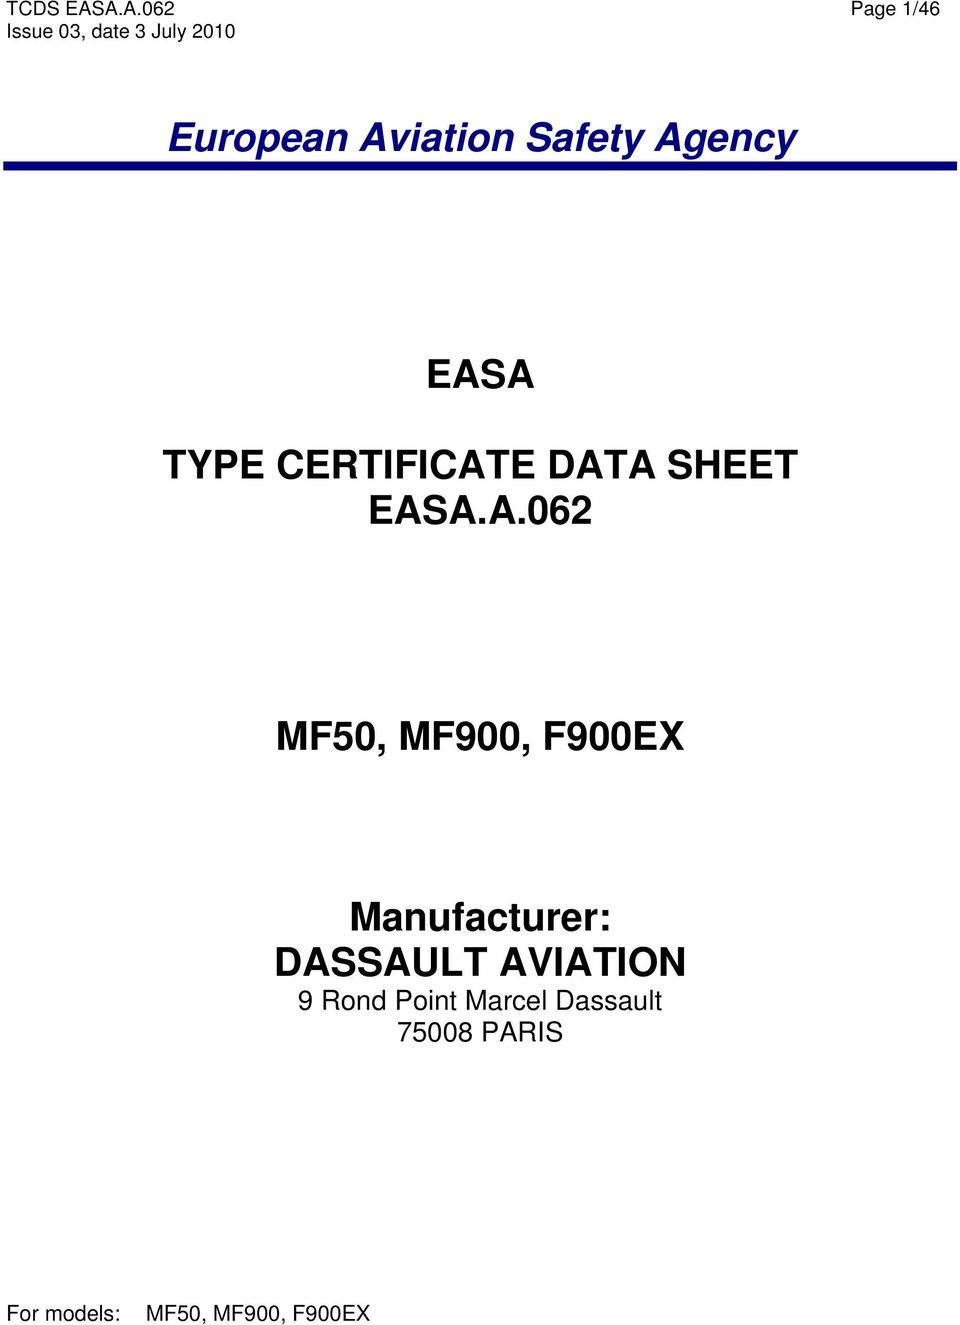 European Aviation Safety Agency Easa Type Certificate Data Sheet